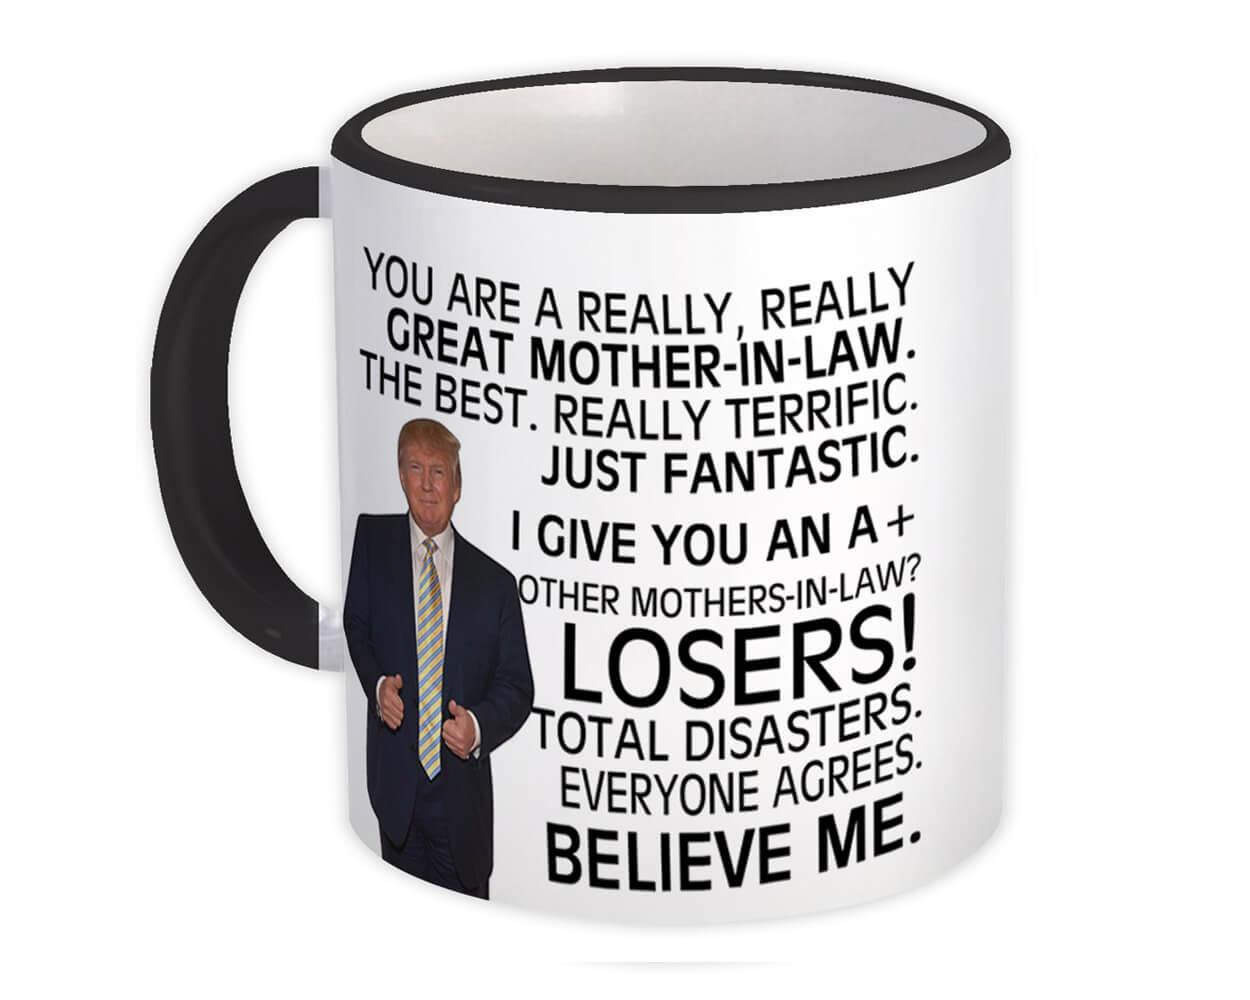 Gift for MOTHER-IN-LAW : Gift Mug Donald Trump MOTHER-IN-LAW Christmas Funny